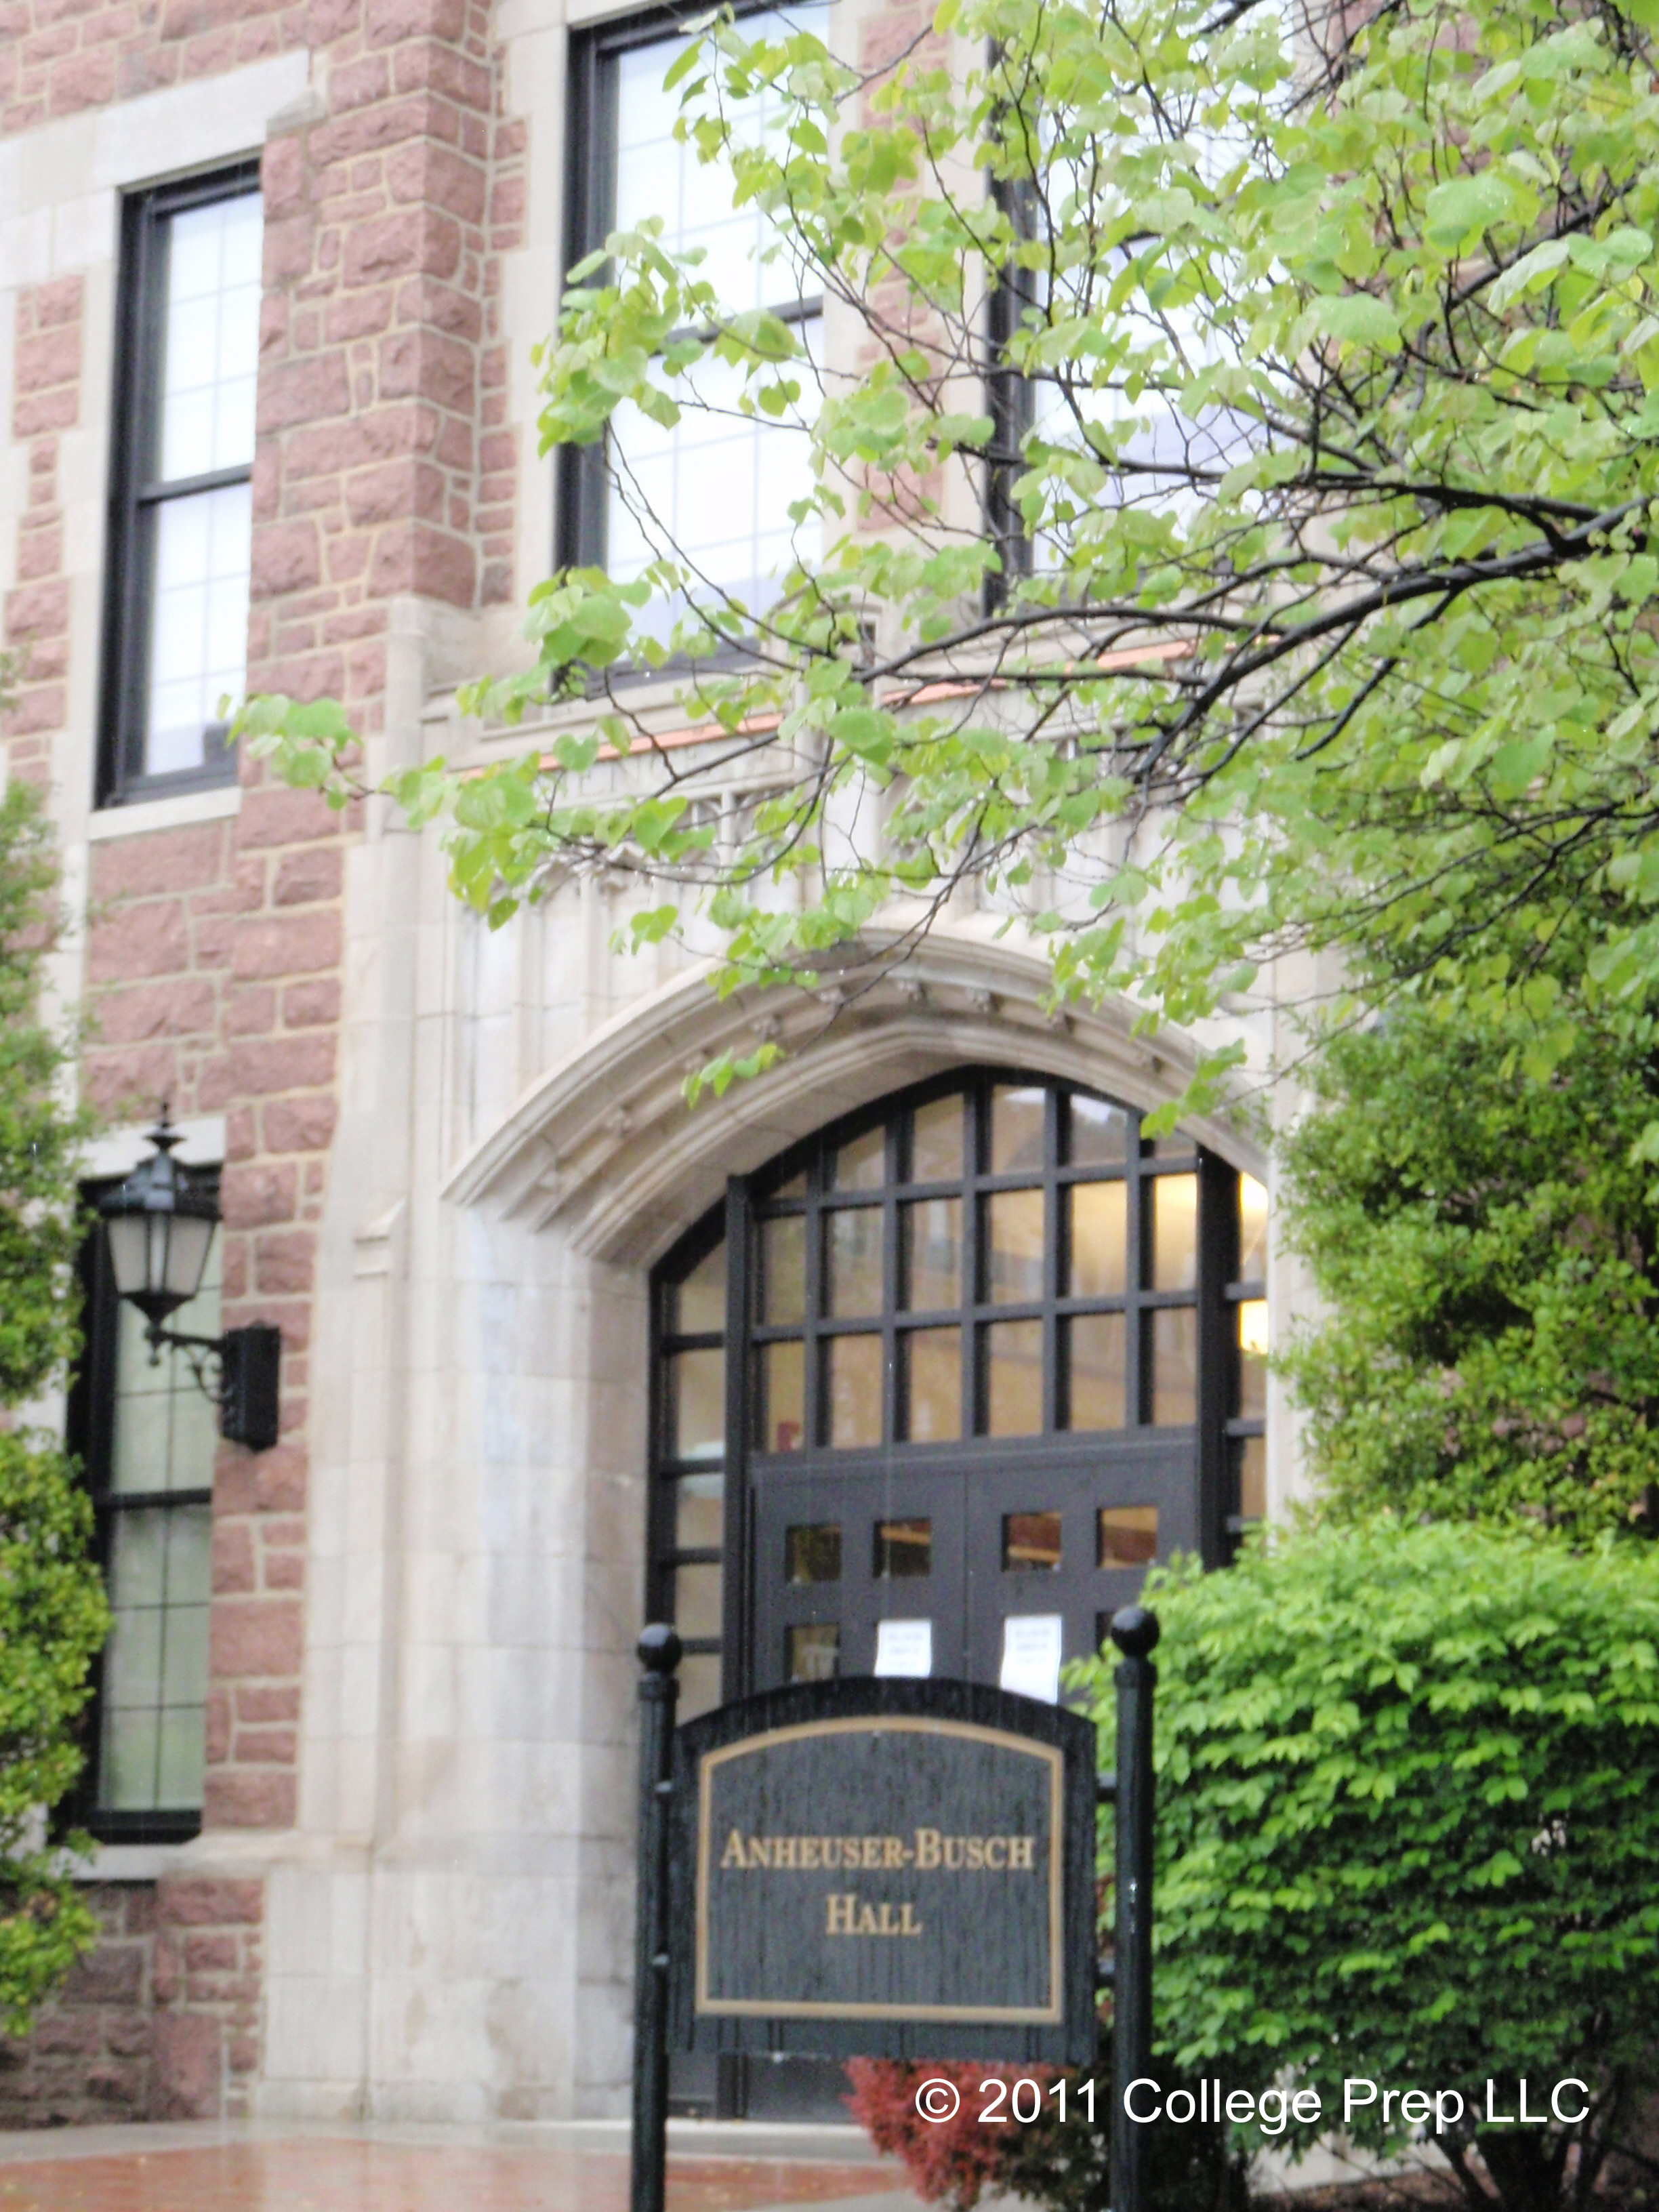 why i want to join fontbonne university What are the top 3 reasons someone should attend cornell the top three reasons someone should attend cornell university is you want a university that has.